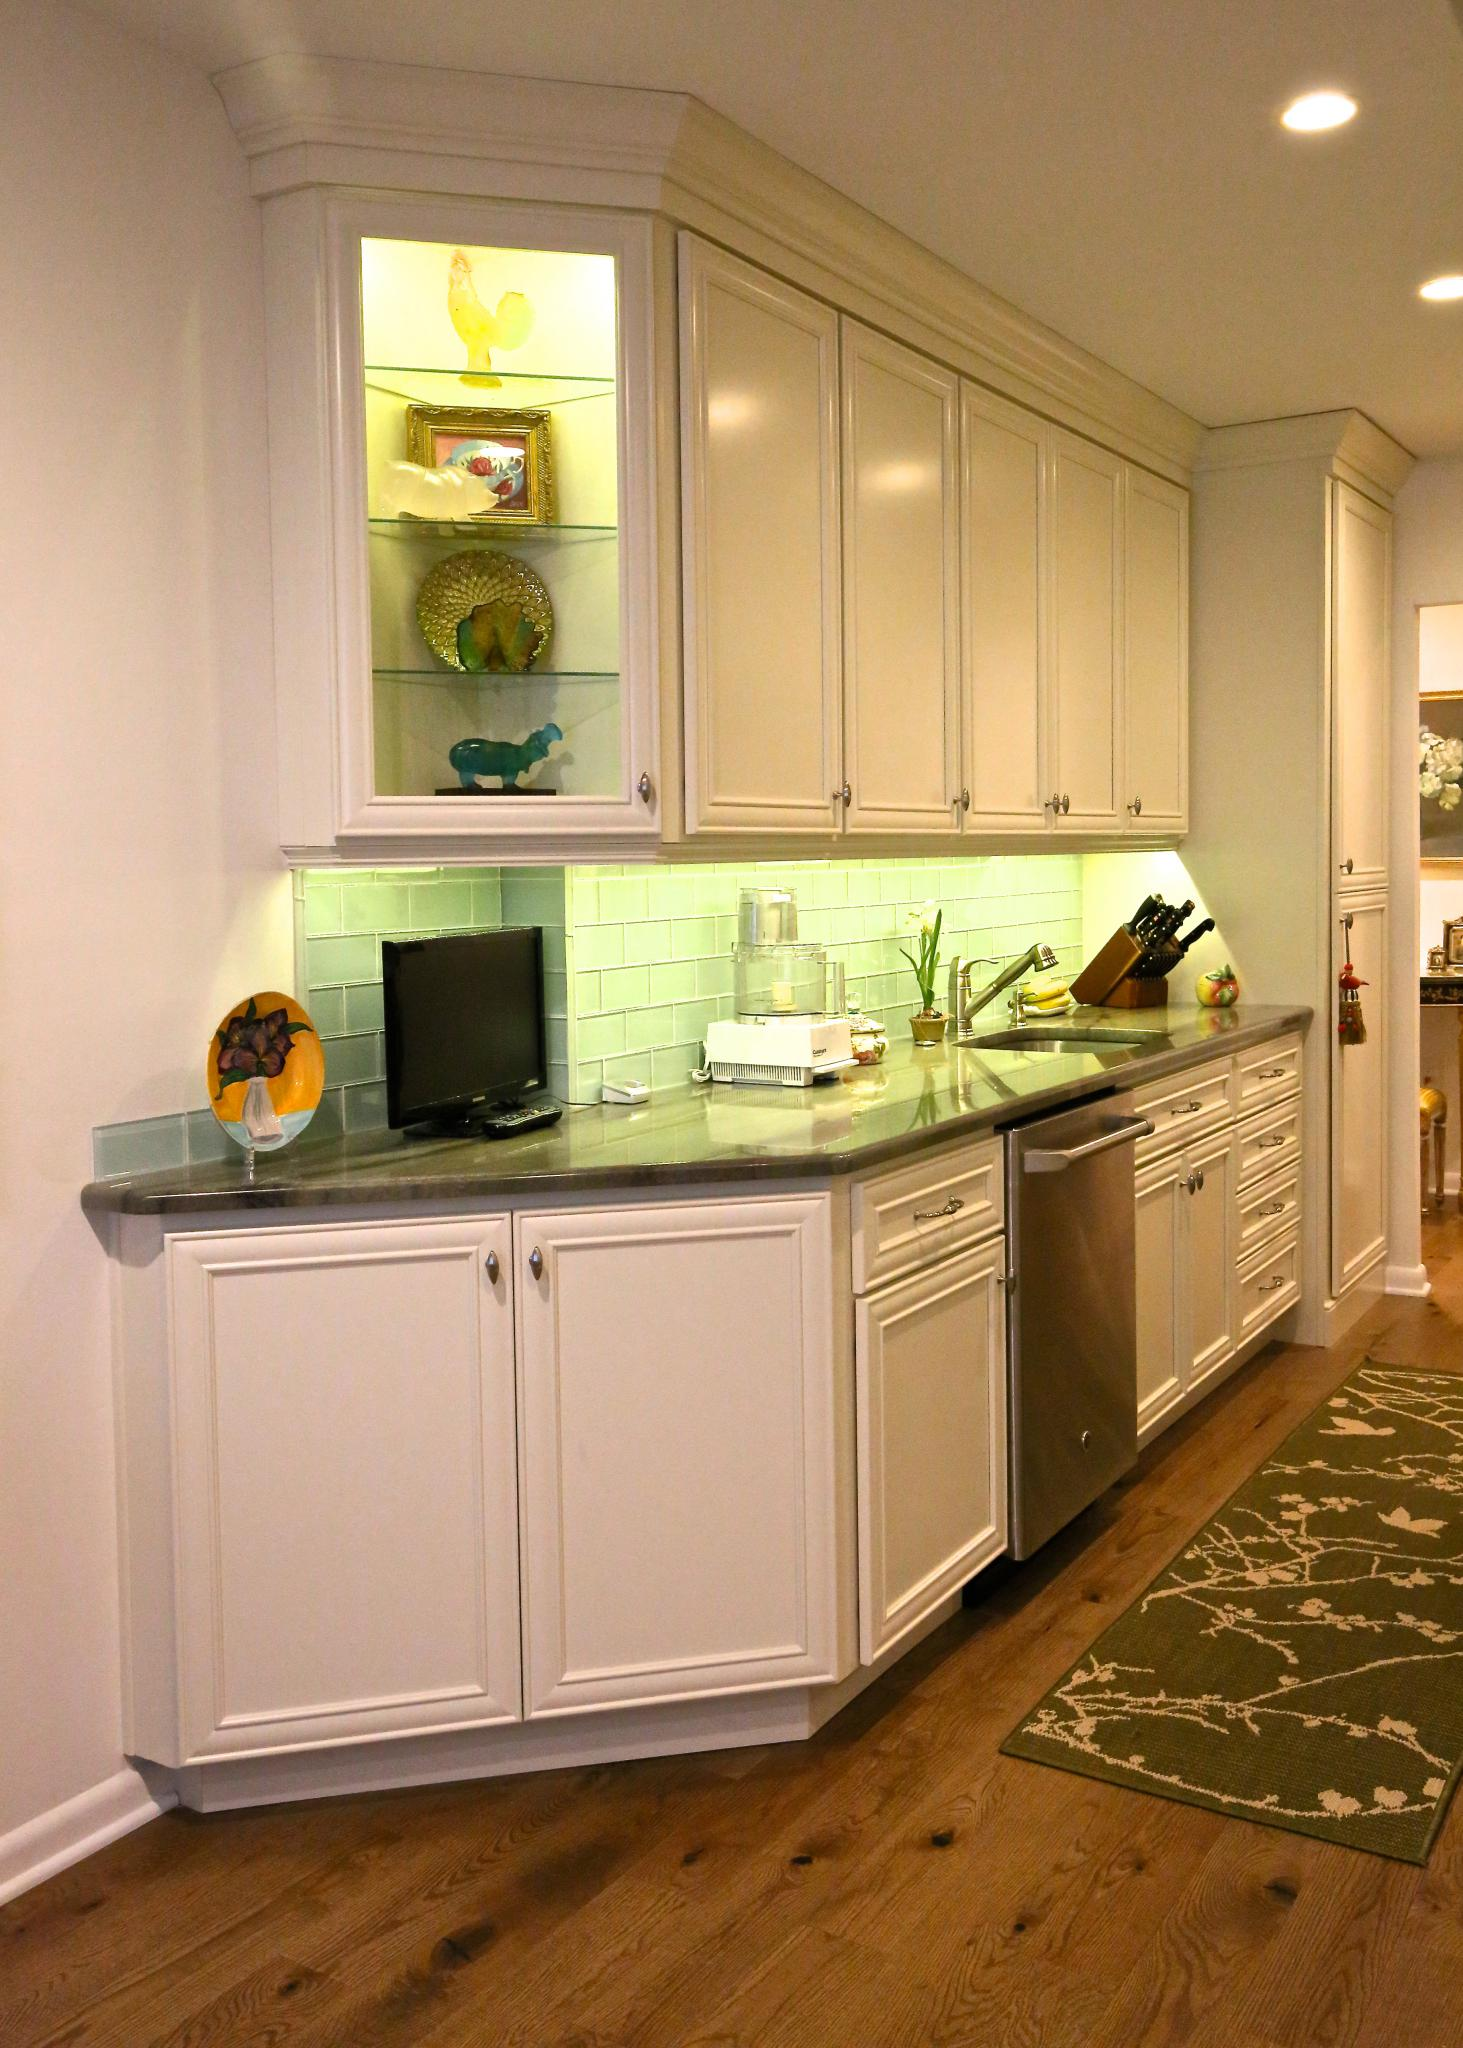 Cherry Hill kitchen remodeling